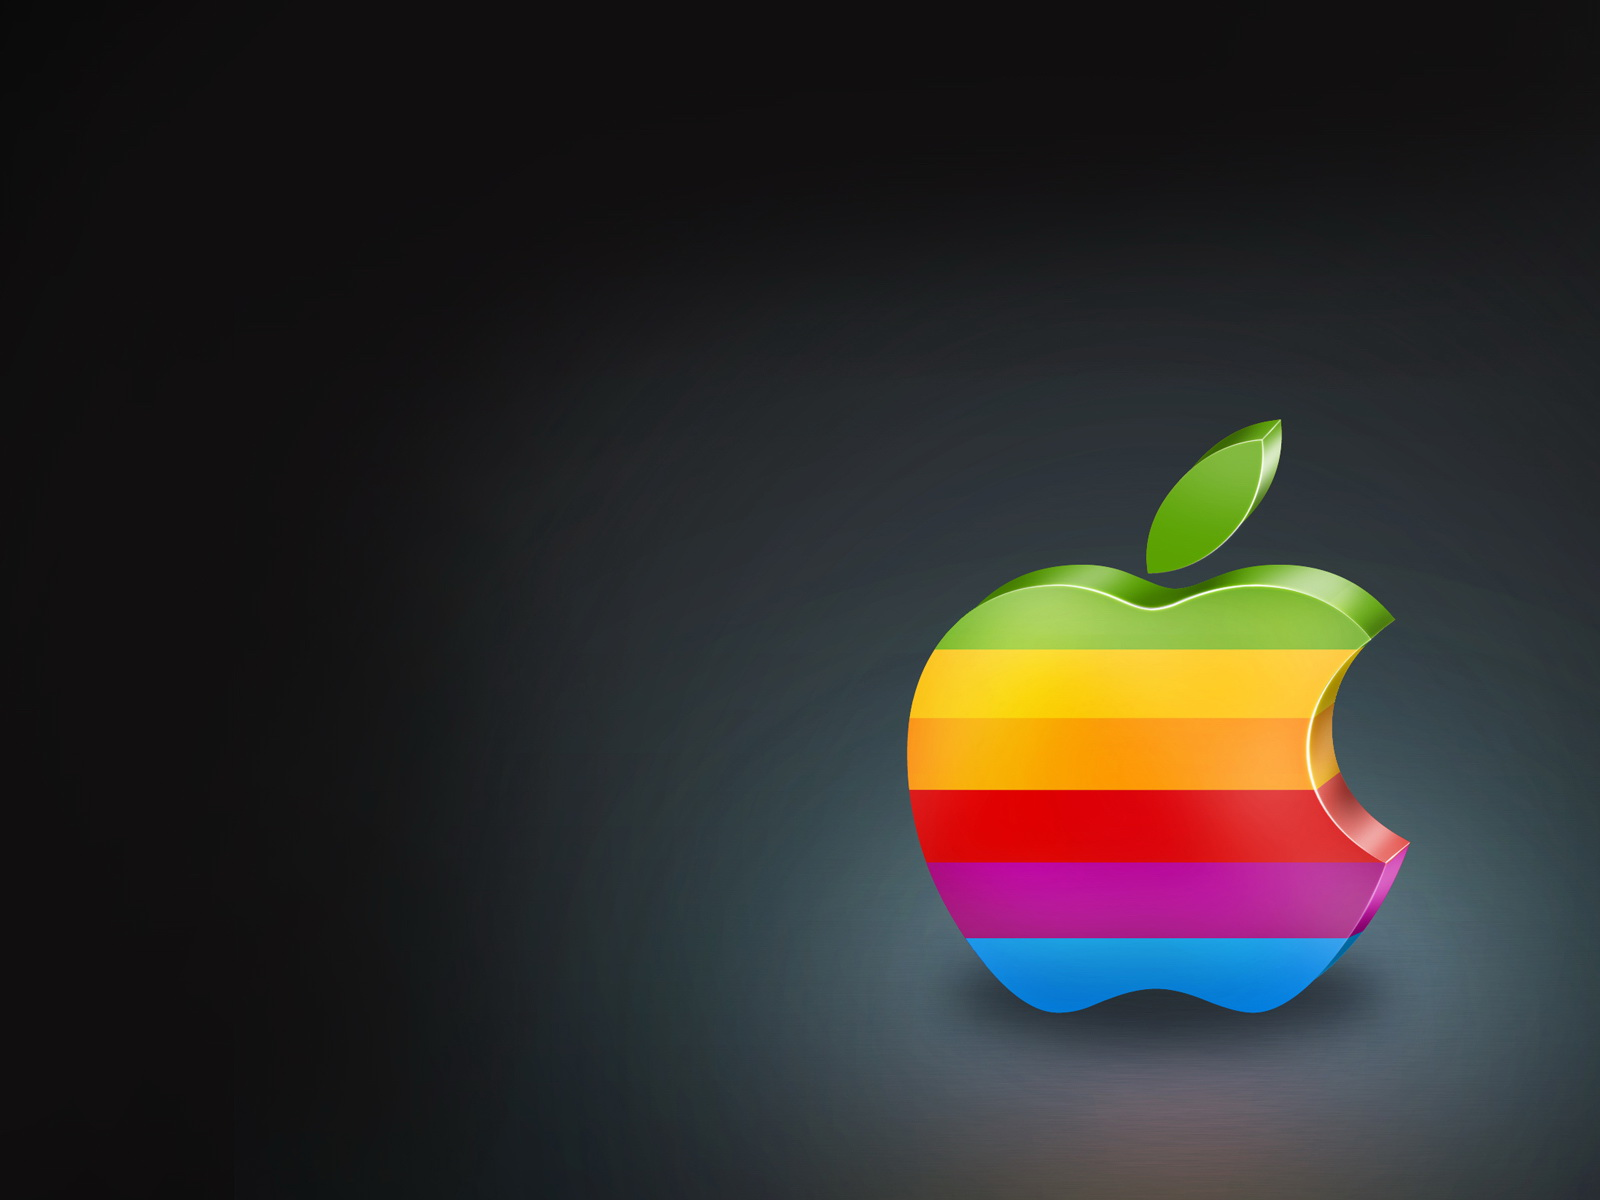 Colorful Apple Logo Wallpapers HD Wallpapers 1600x1200